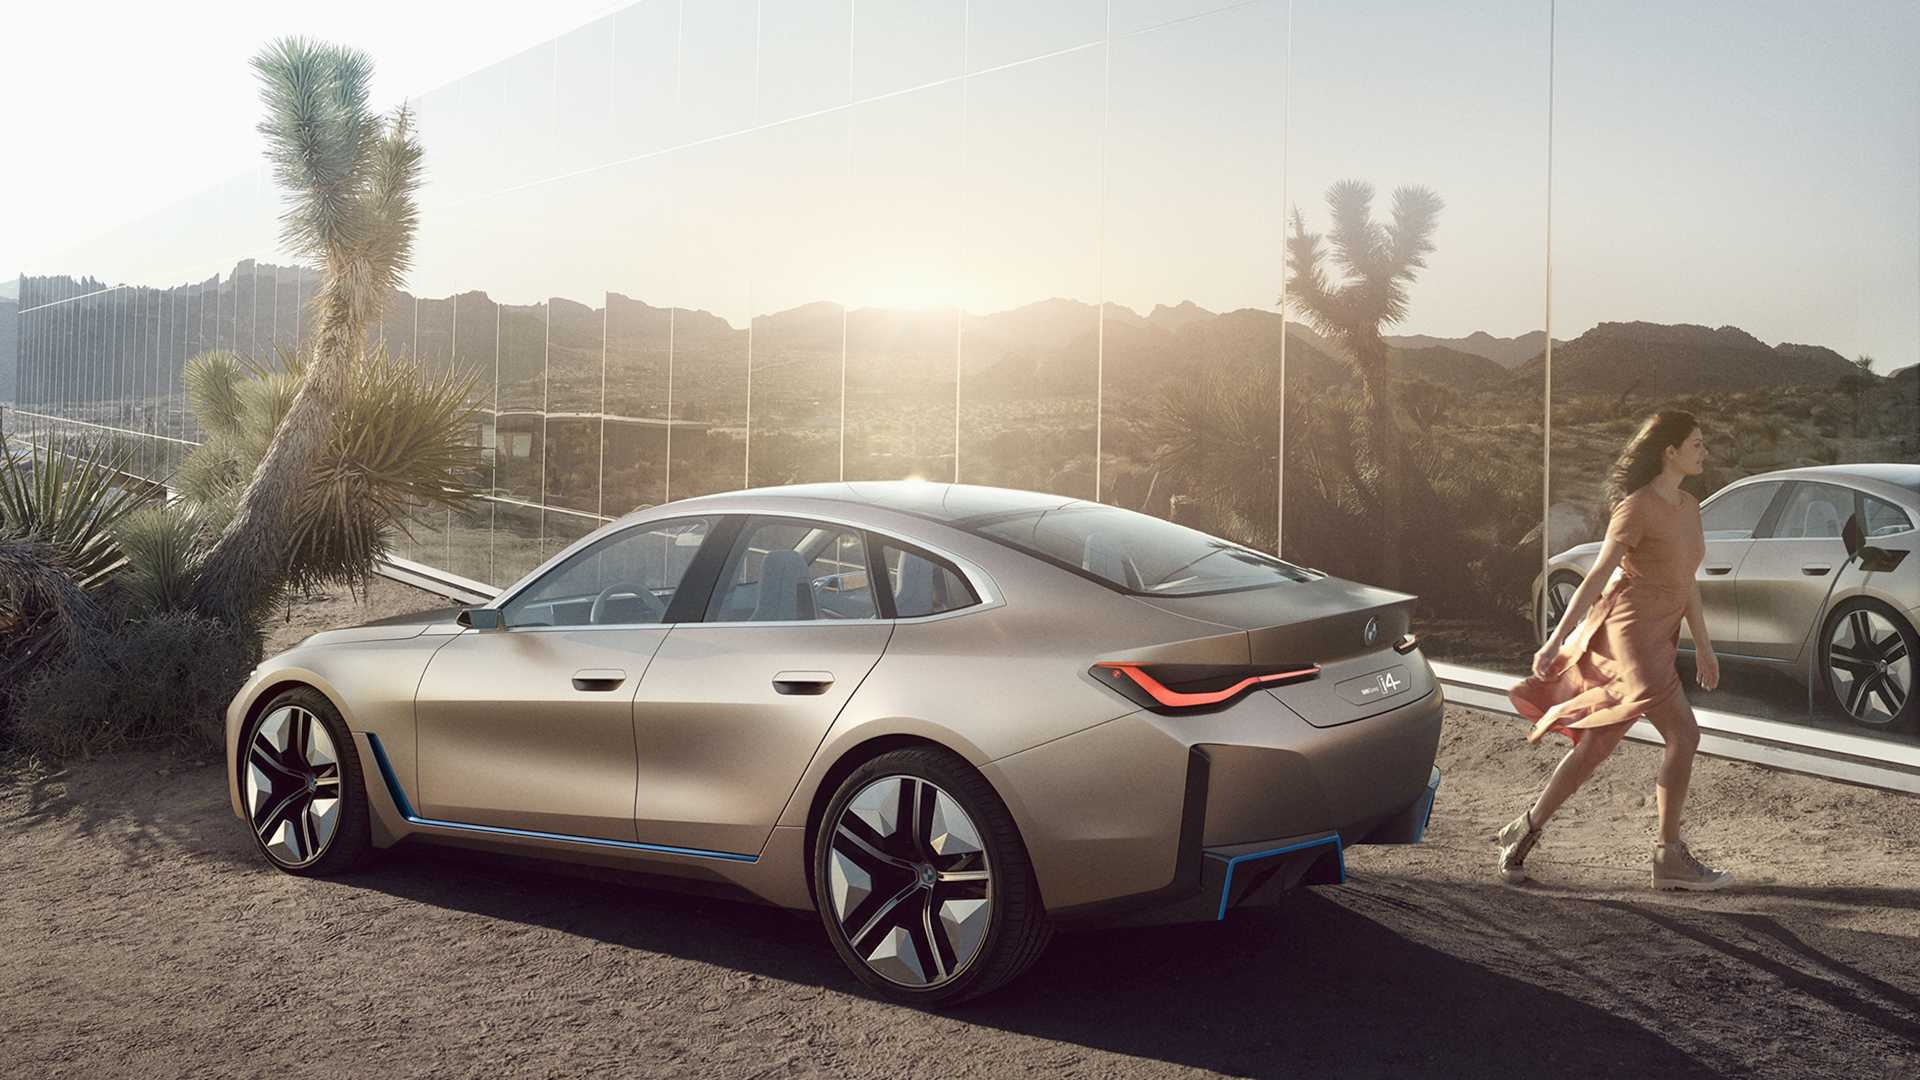 2020-bmw-concept-i4-4 - virtual car